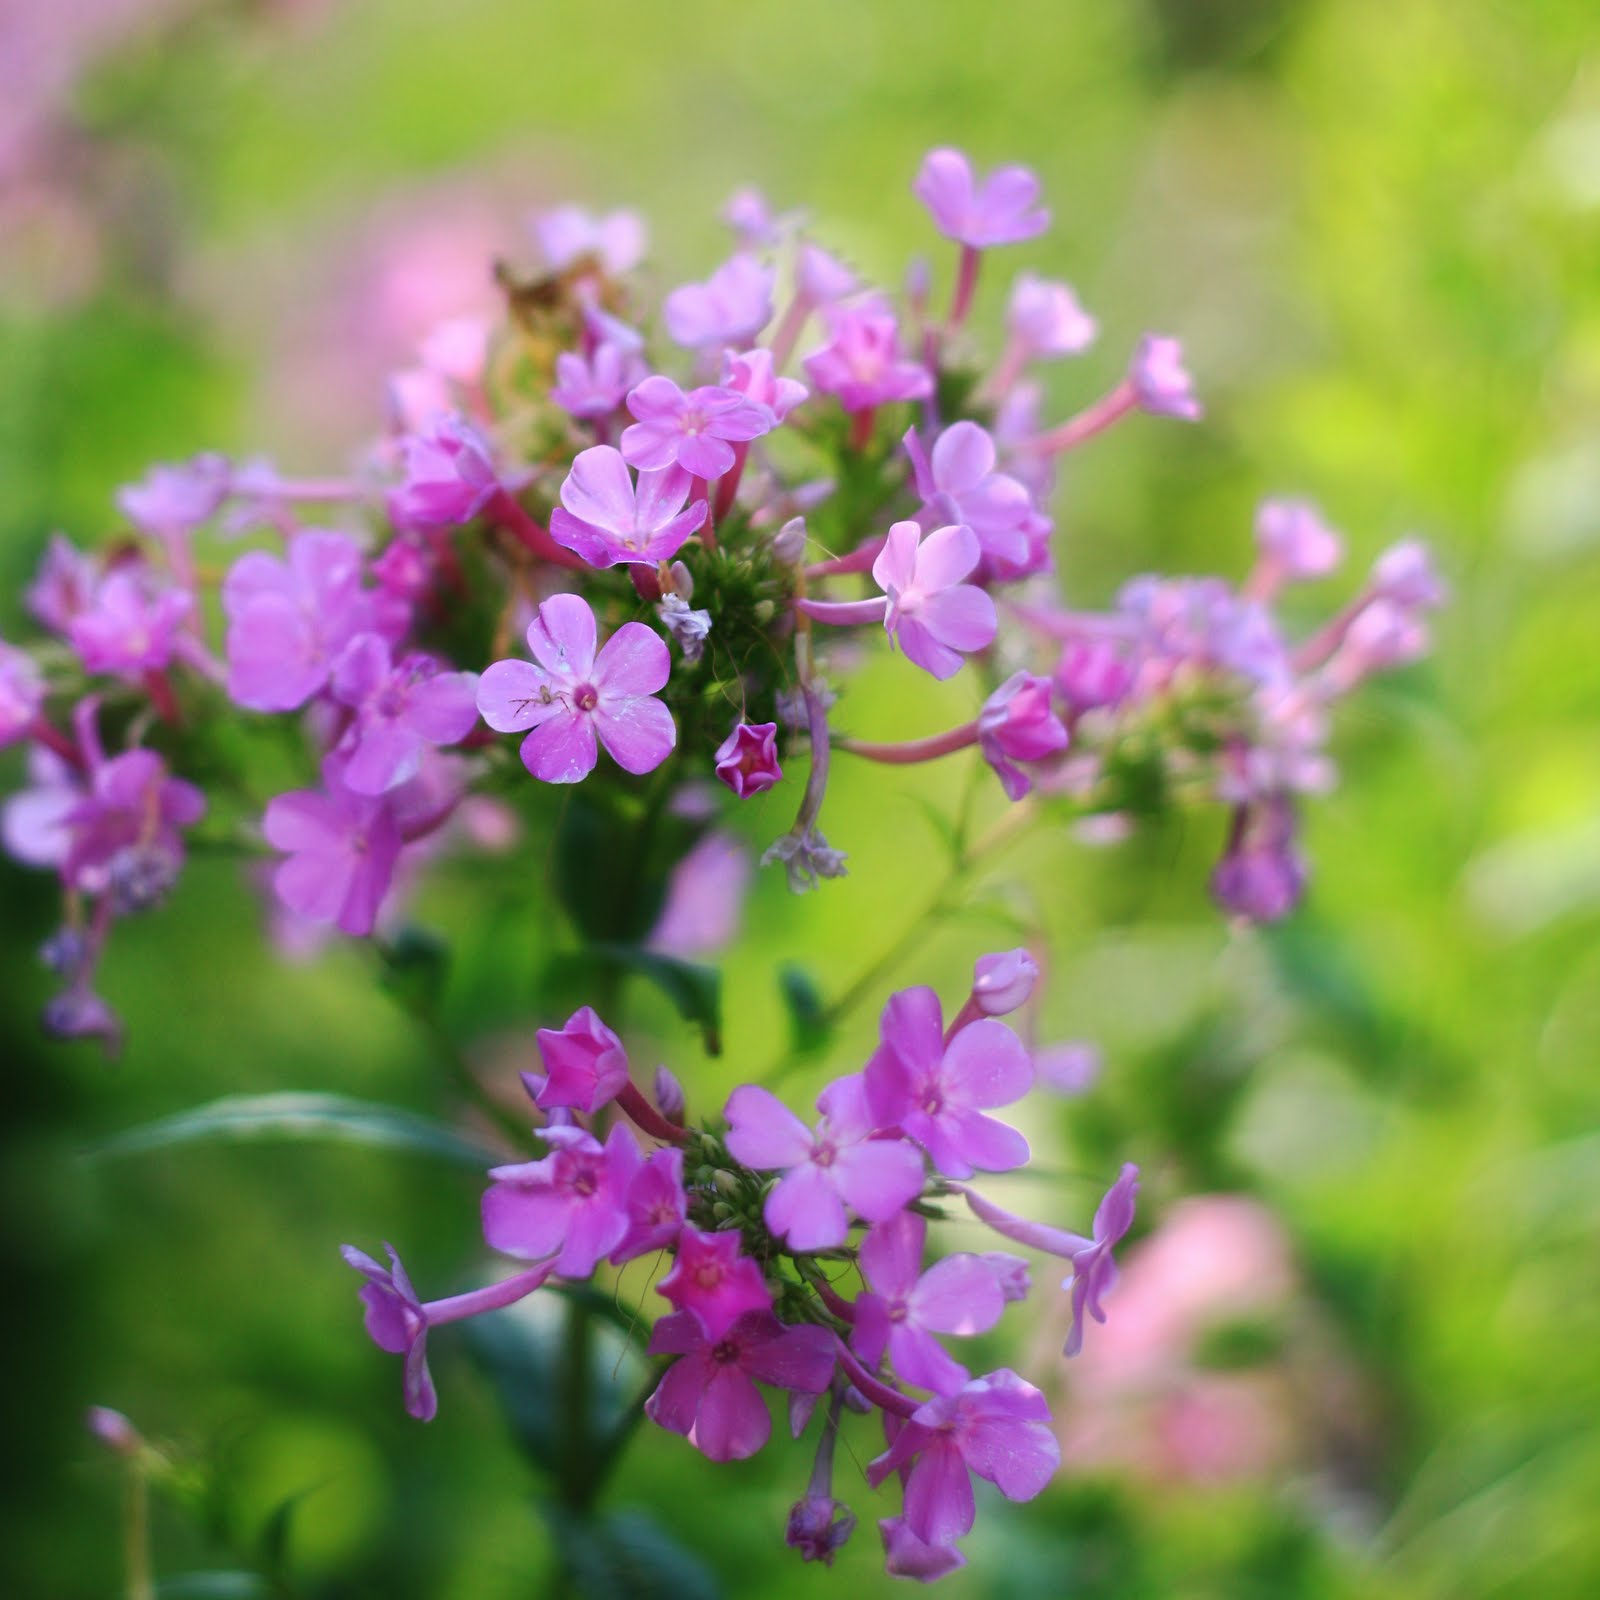 erin 39 s art and gardens the tall garden phlox is starting to bloom. Black Bedroom Furniture Sets. Home Design Ideas